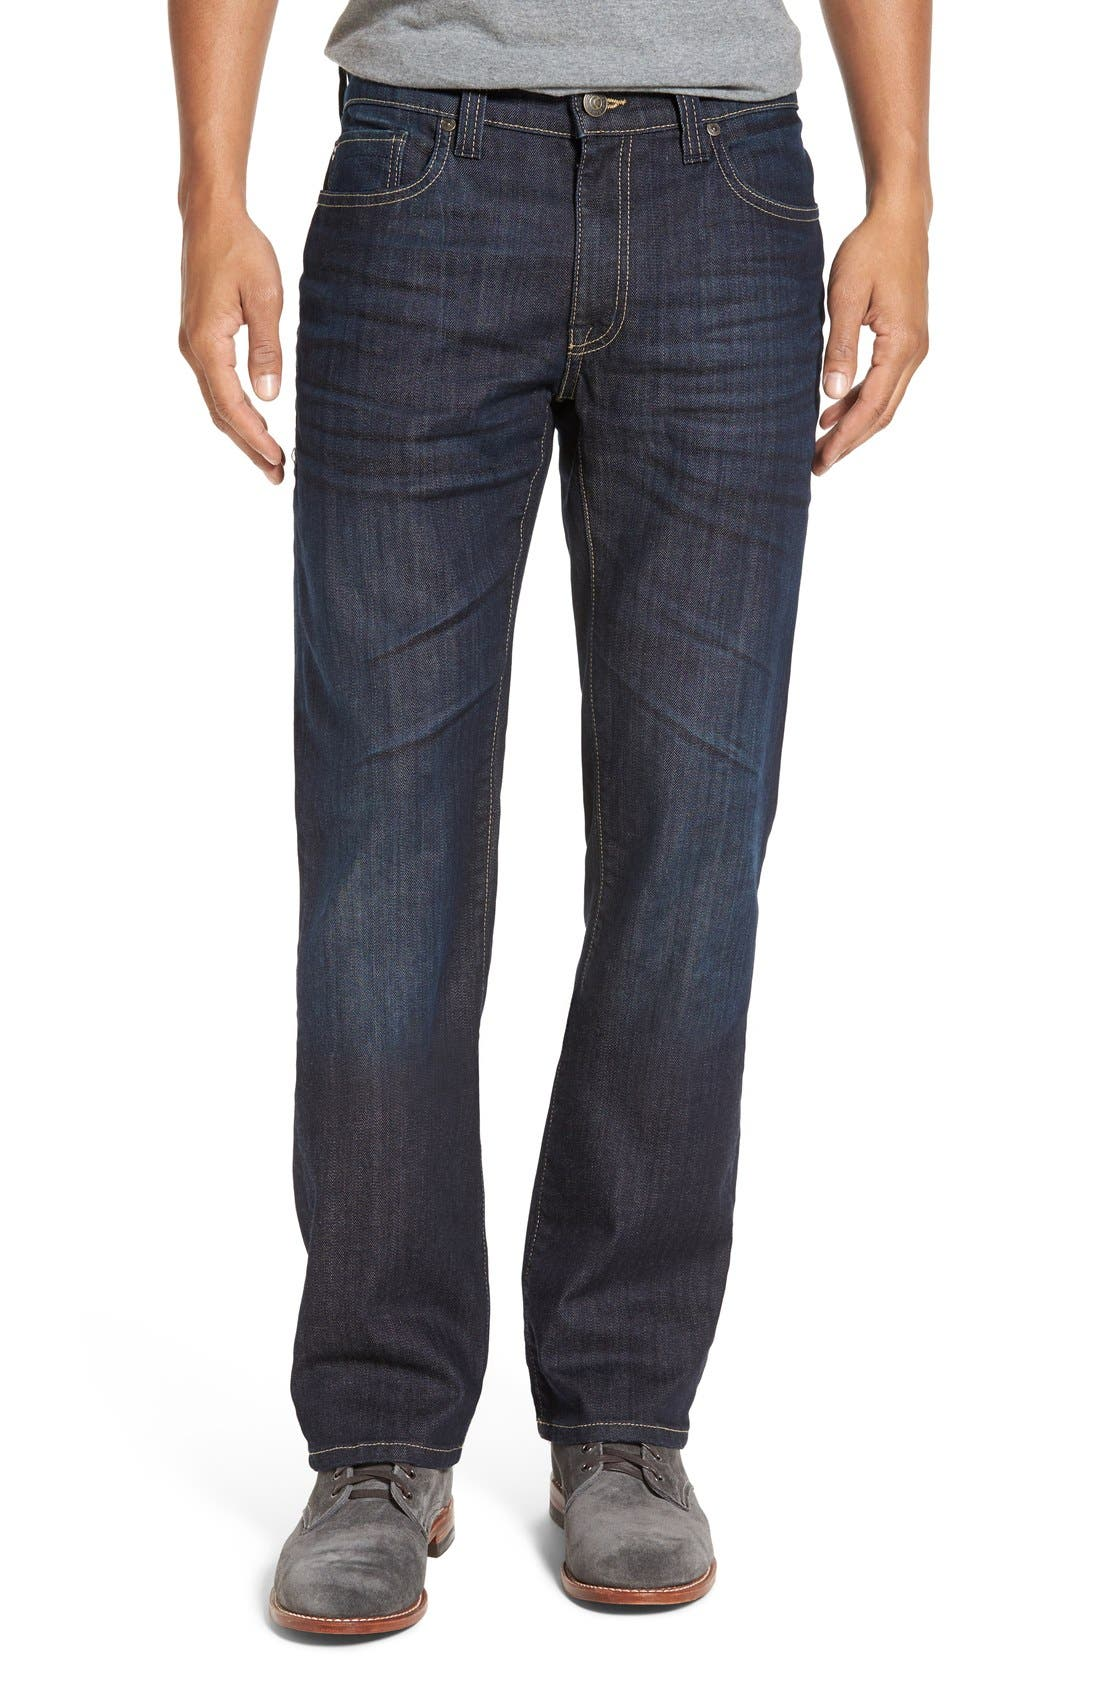 FIDELITY DENIM 50-11 Straight Leg Jeans